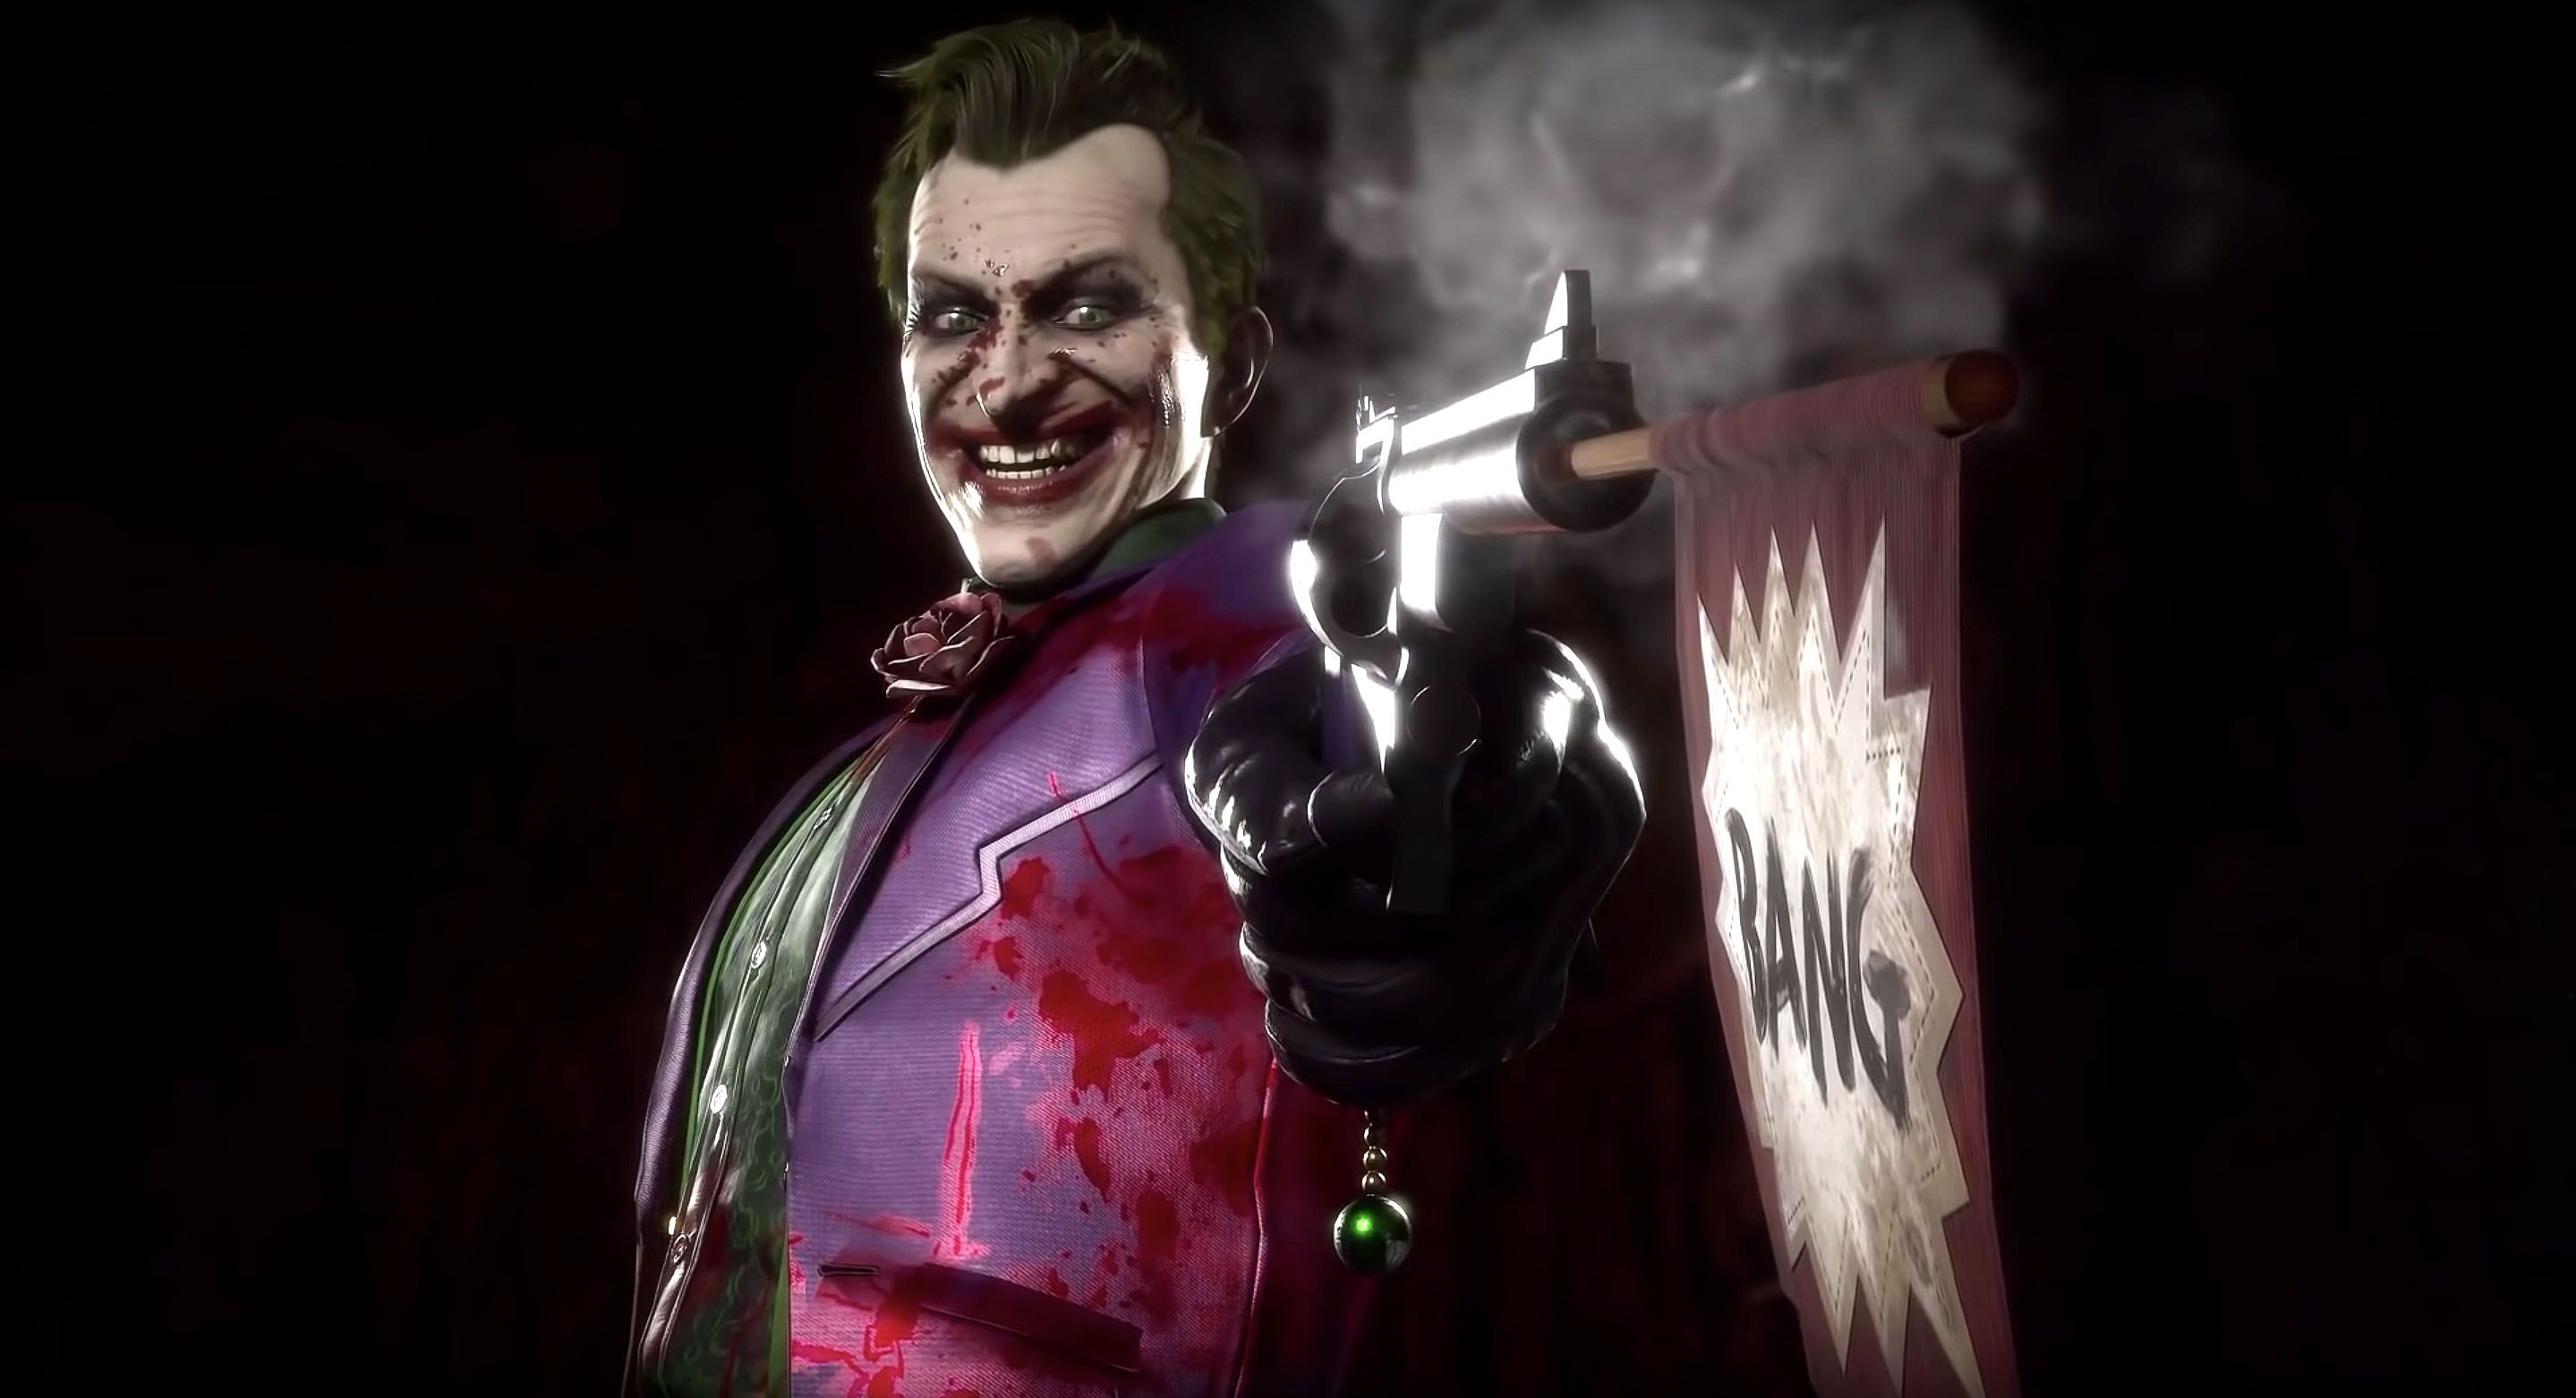 Mortal Kombat 11 Joker Release Date - Joker DLC Character Reaction